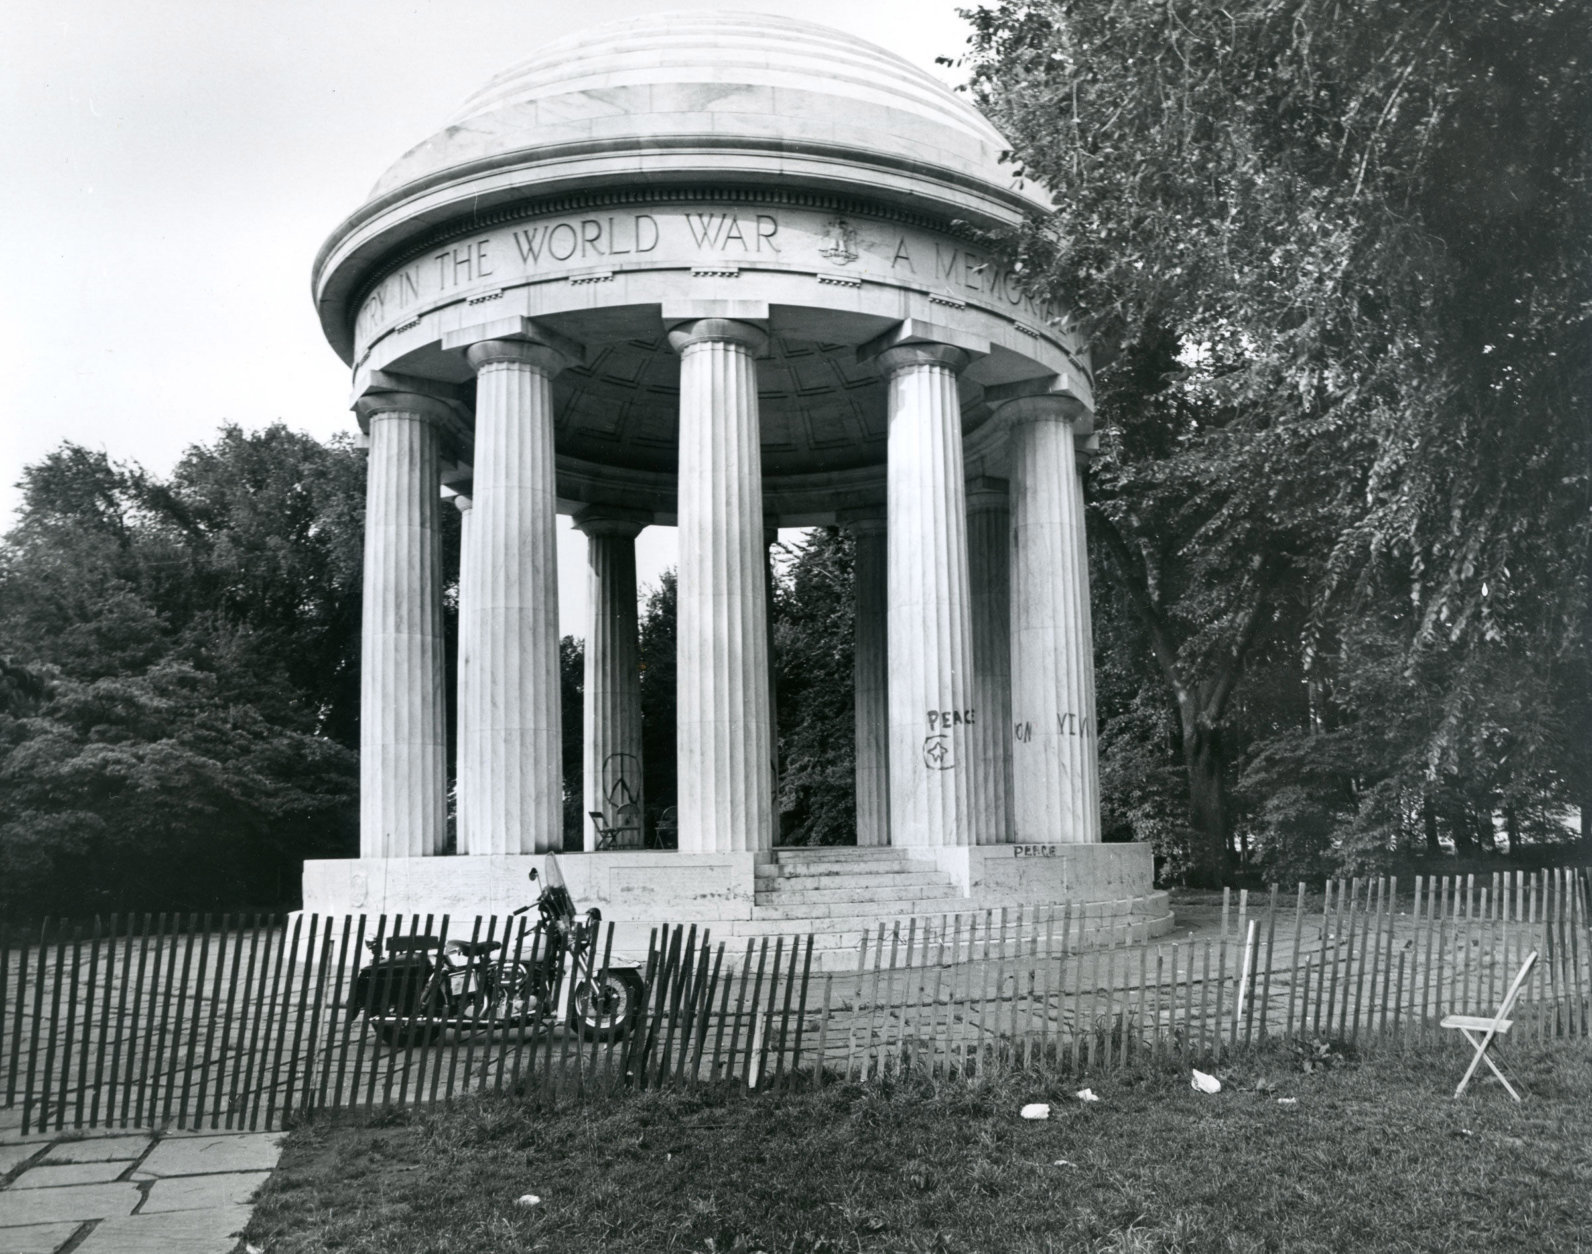 The World War I Memorial suffered damage during the Resurrection City encampment, the National Park Service said. (NPS/Museum Resource Center)